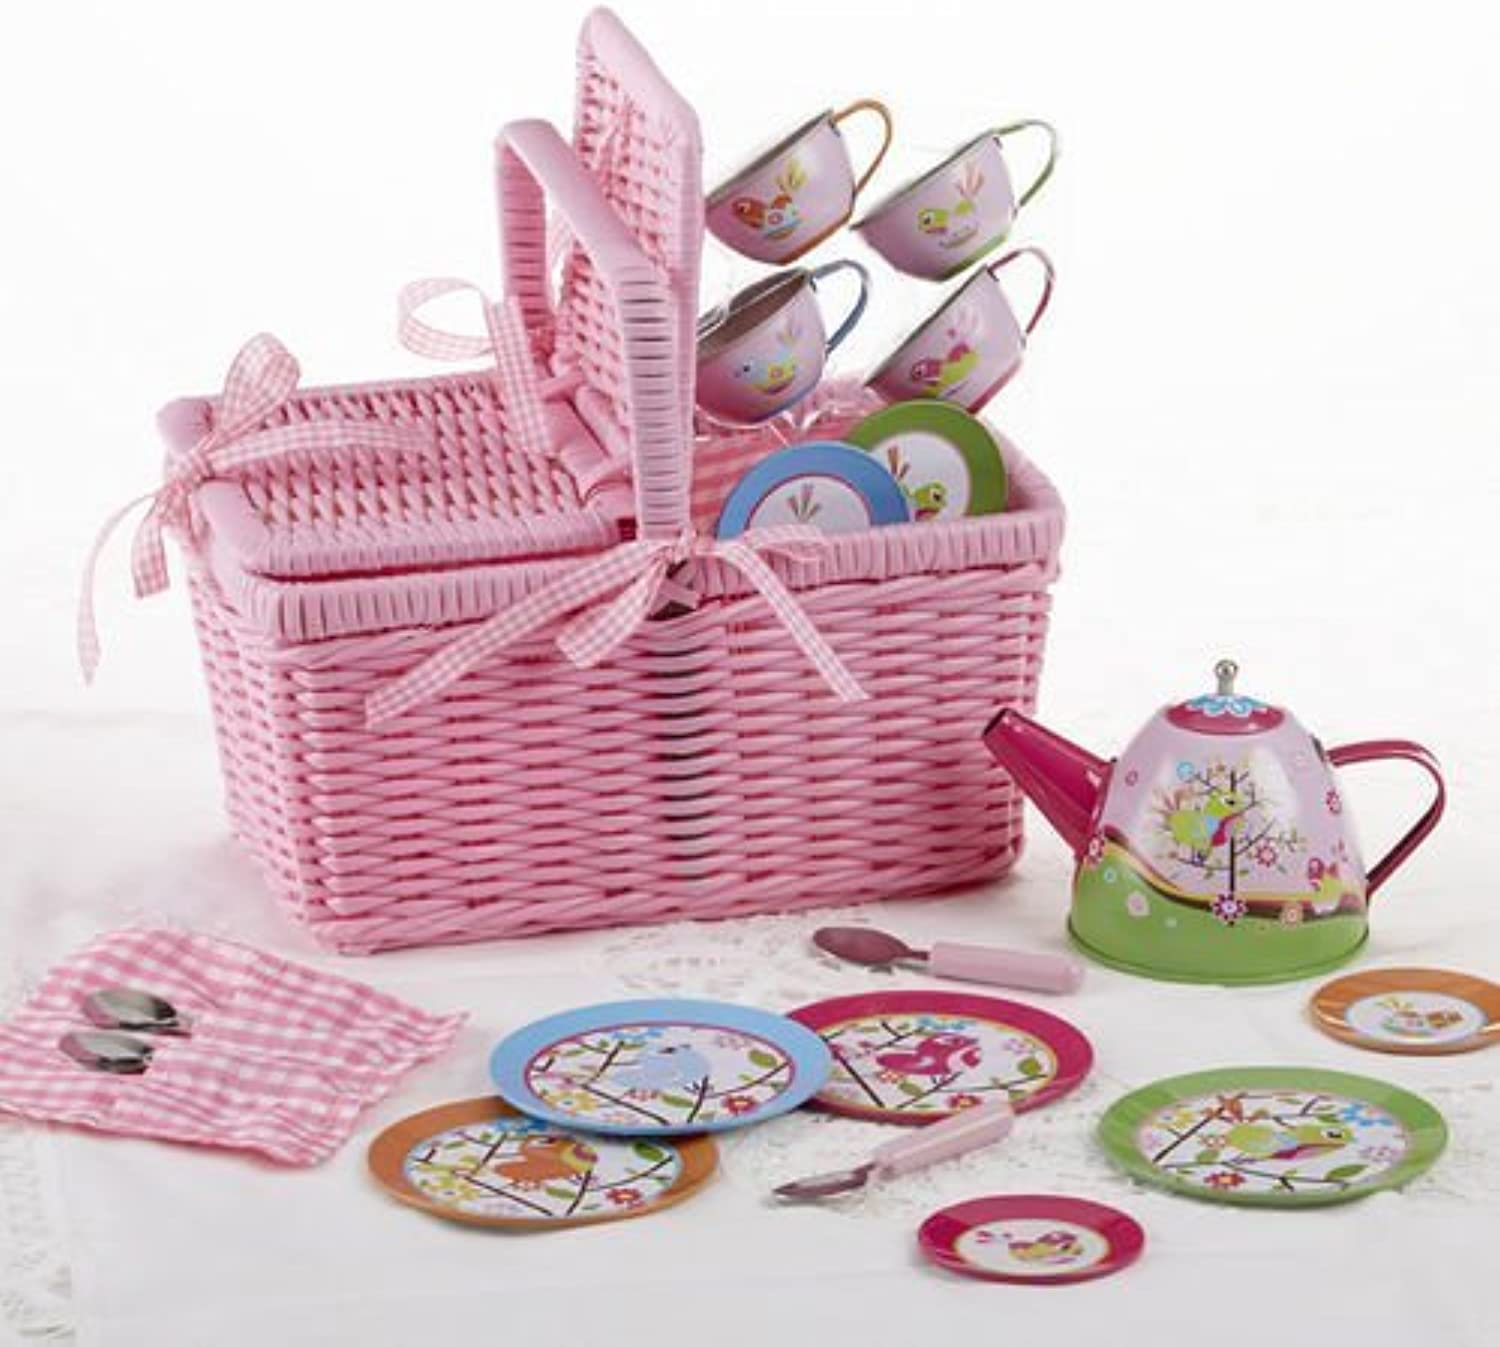 Delton Products Bird Tin Tea Set with Basket (18 Piece), 4  by Getting Fit